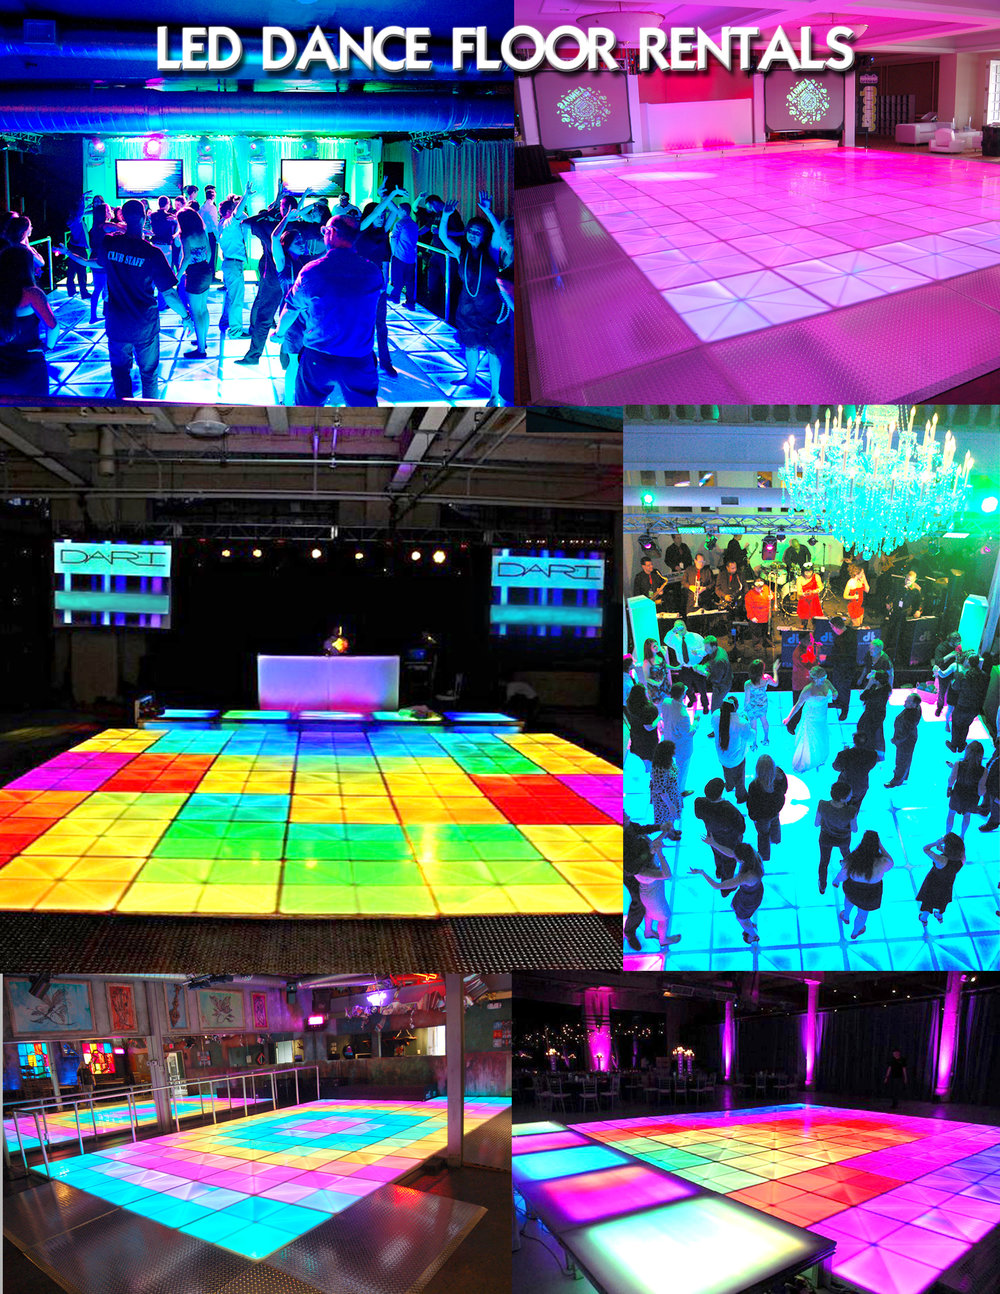 007-P7_LED Dance Floor Rentals.jpg